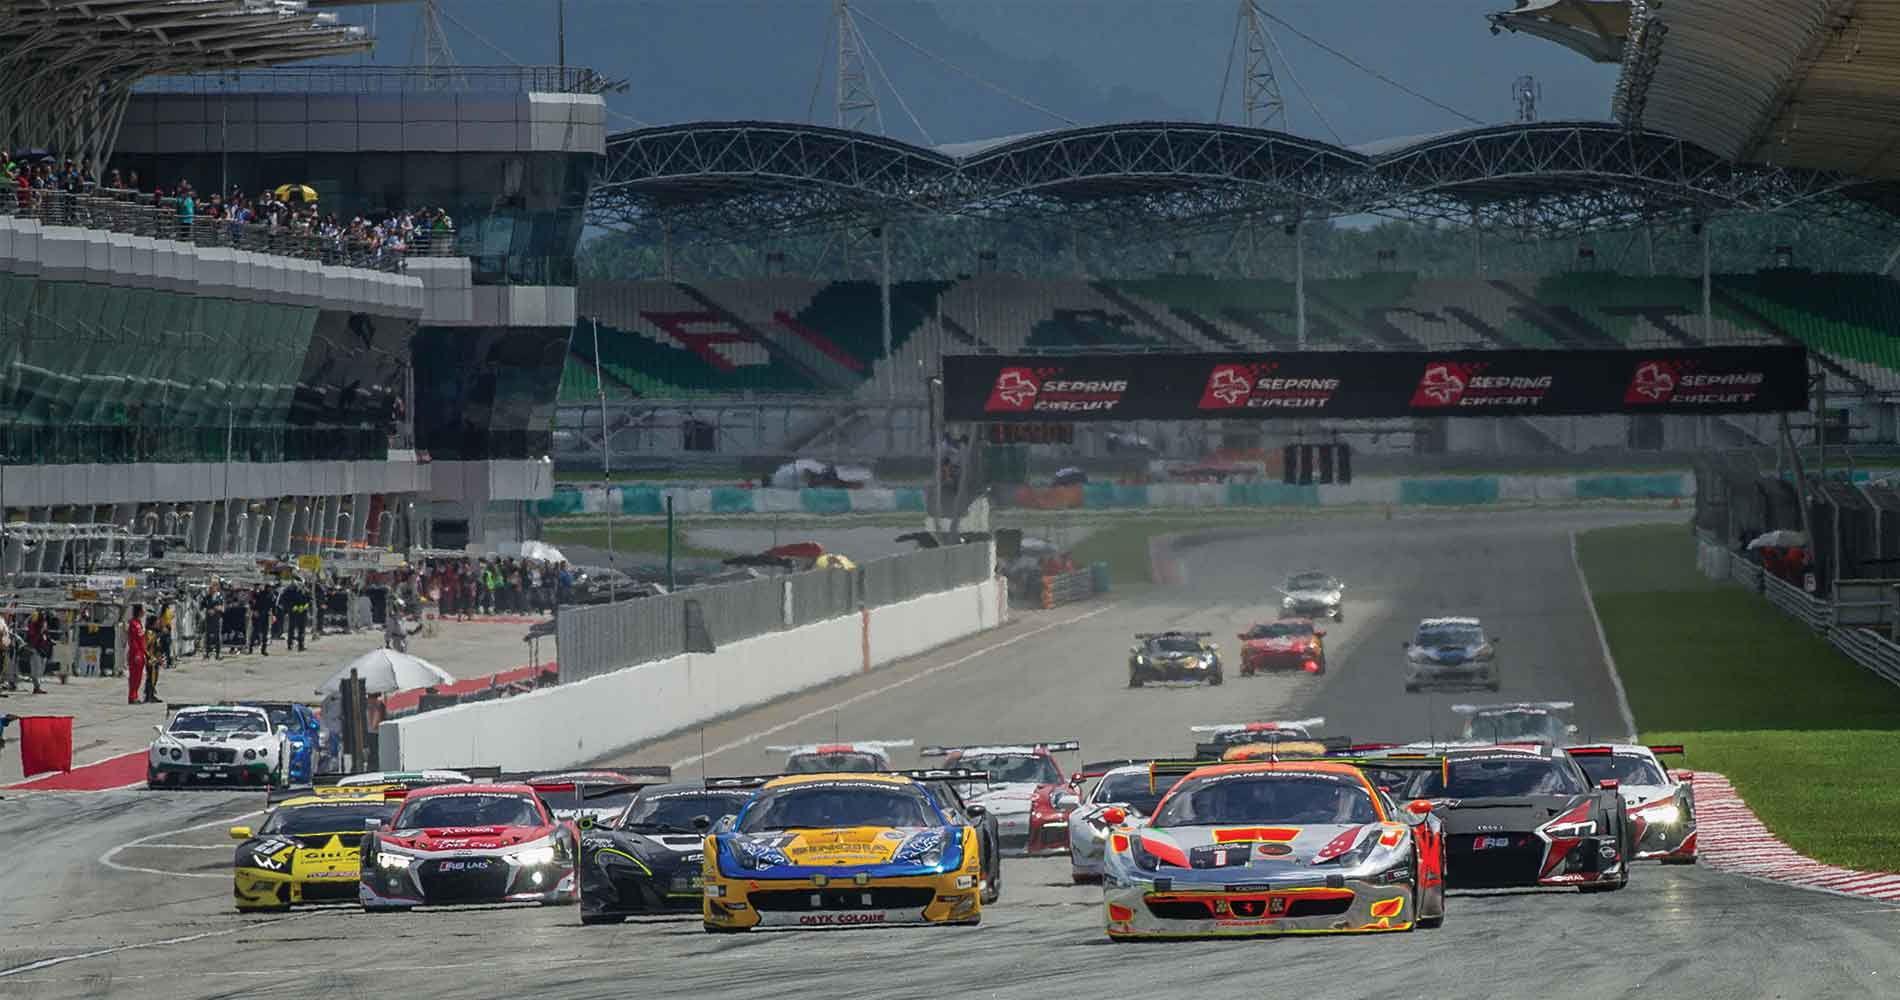 motul-sepang-12-hours-entry-list-revealed-motorsportdays-track-days-1